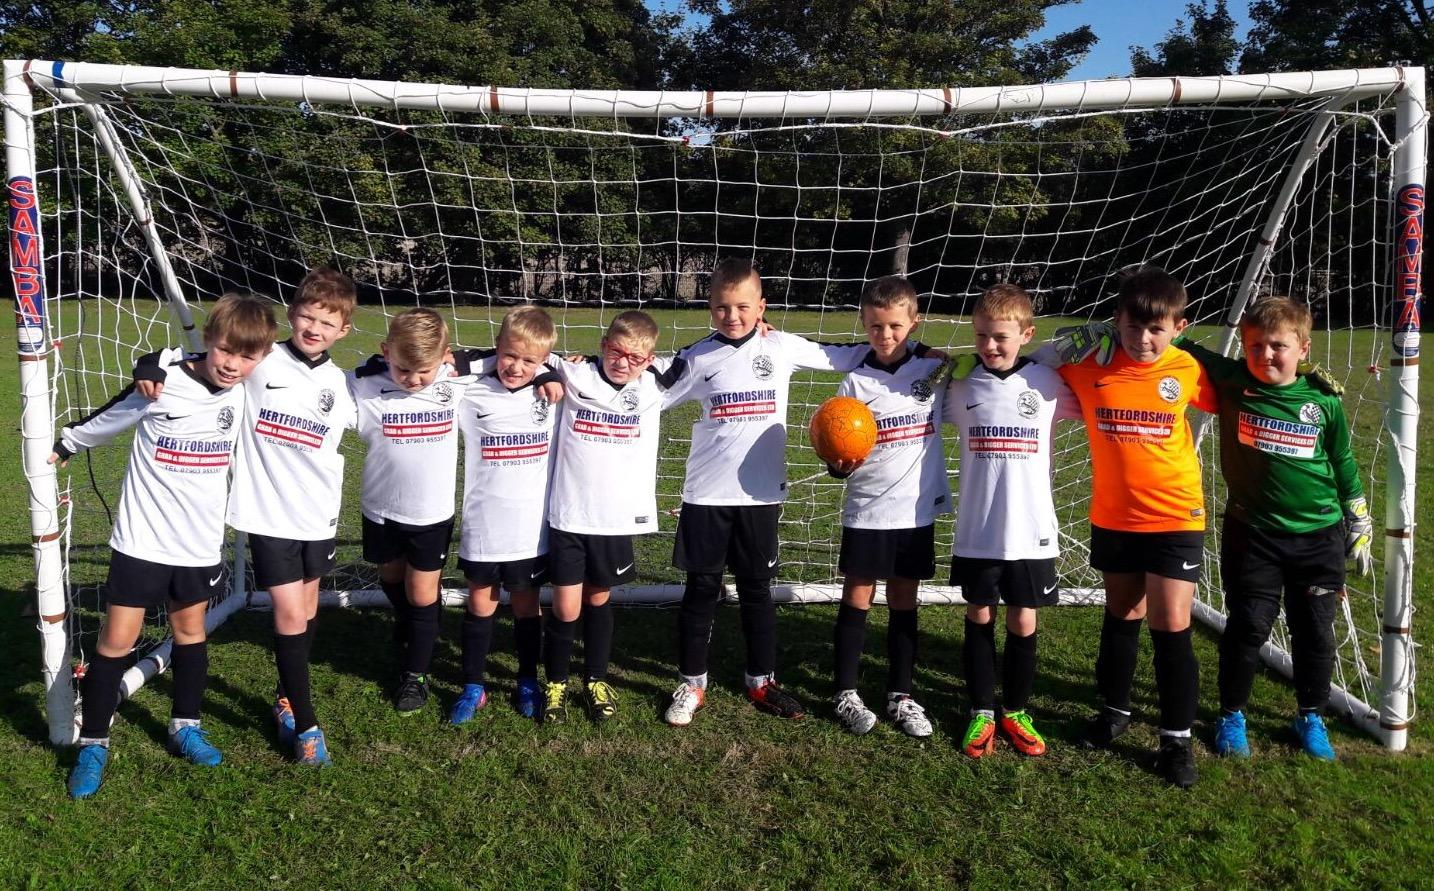 Our Under 9's team - The Falcons